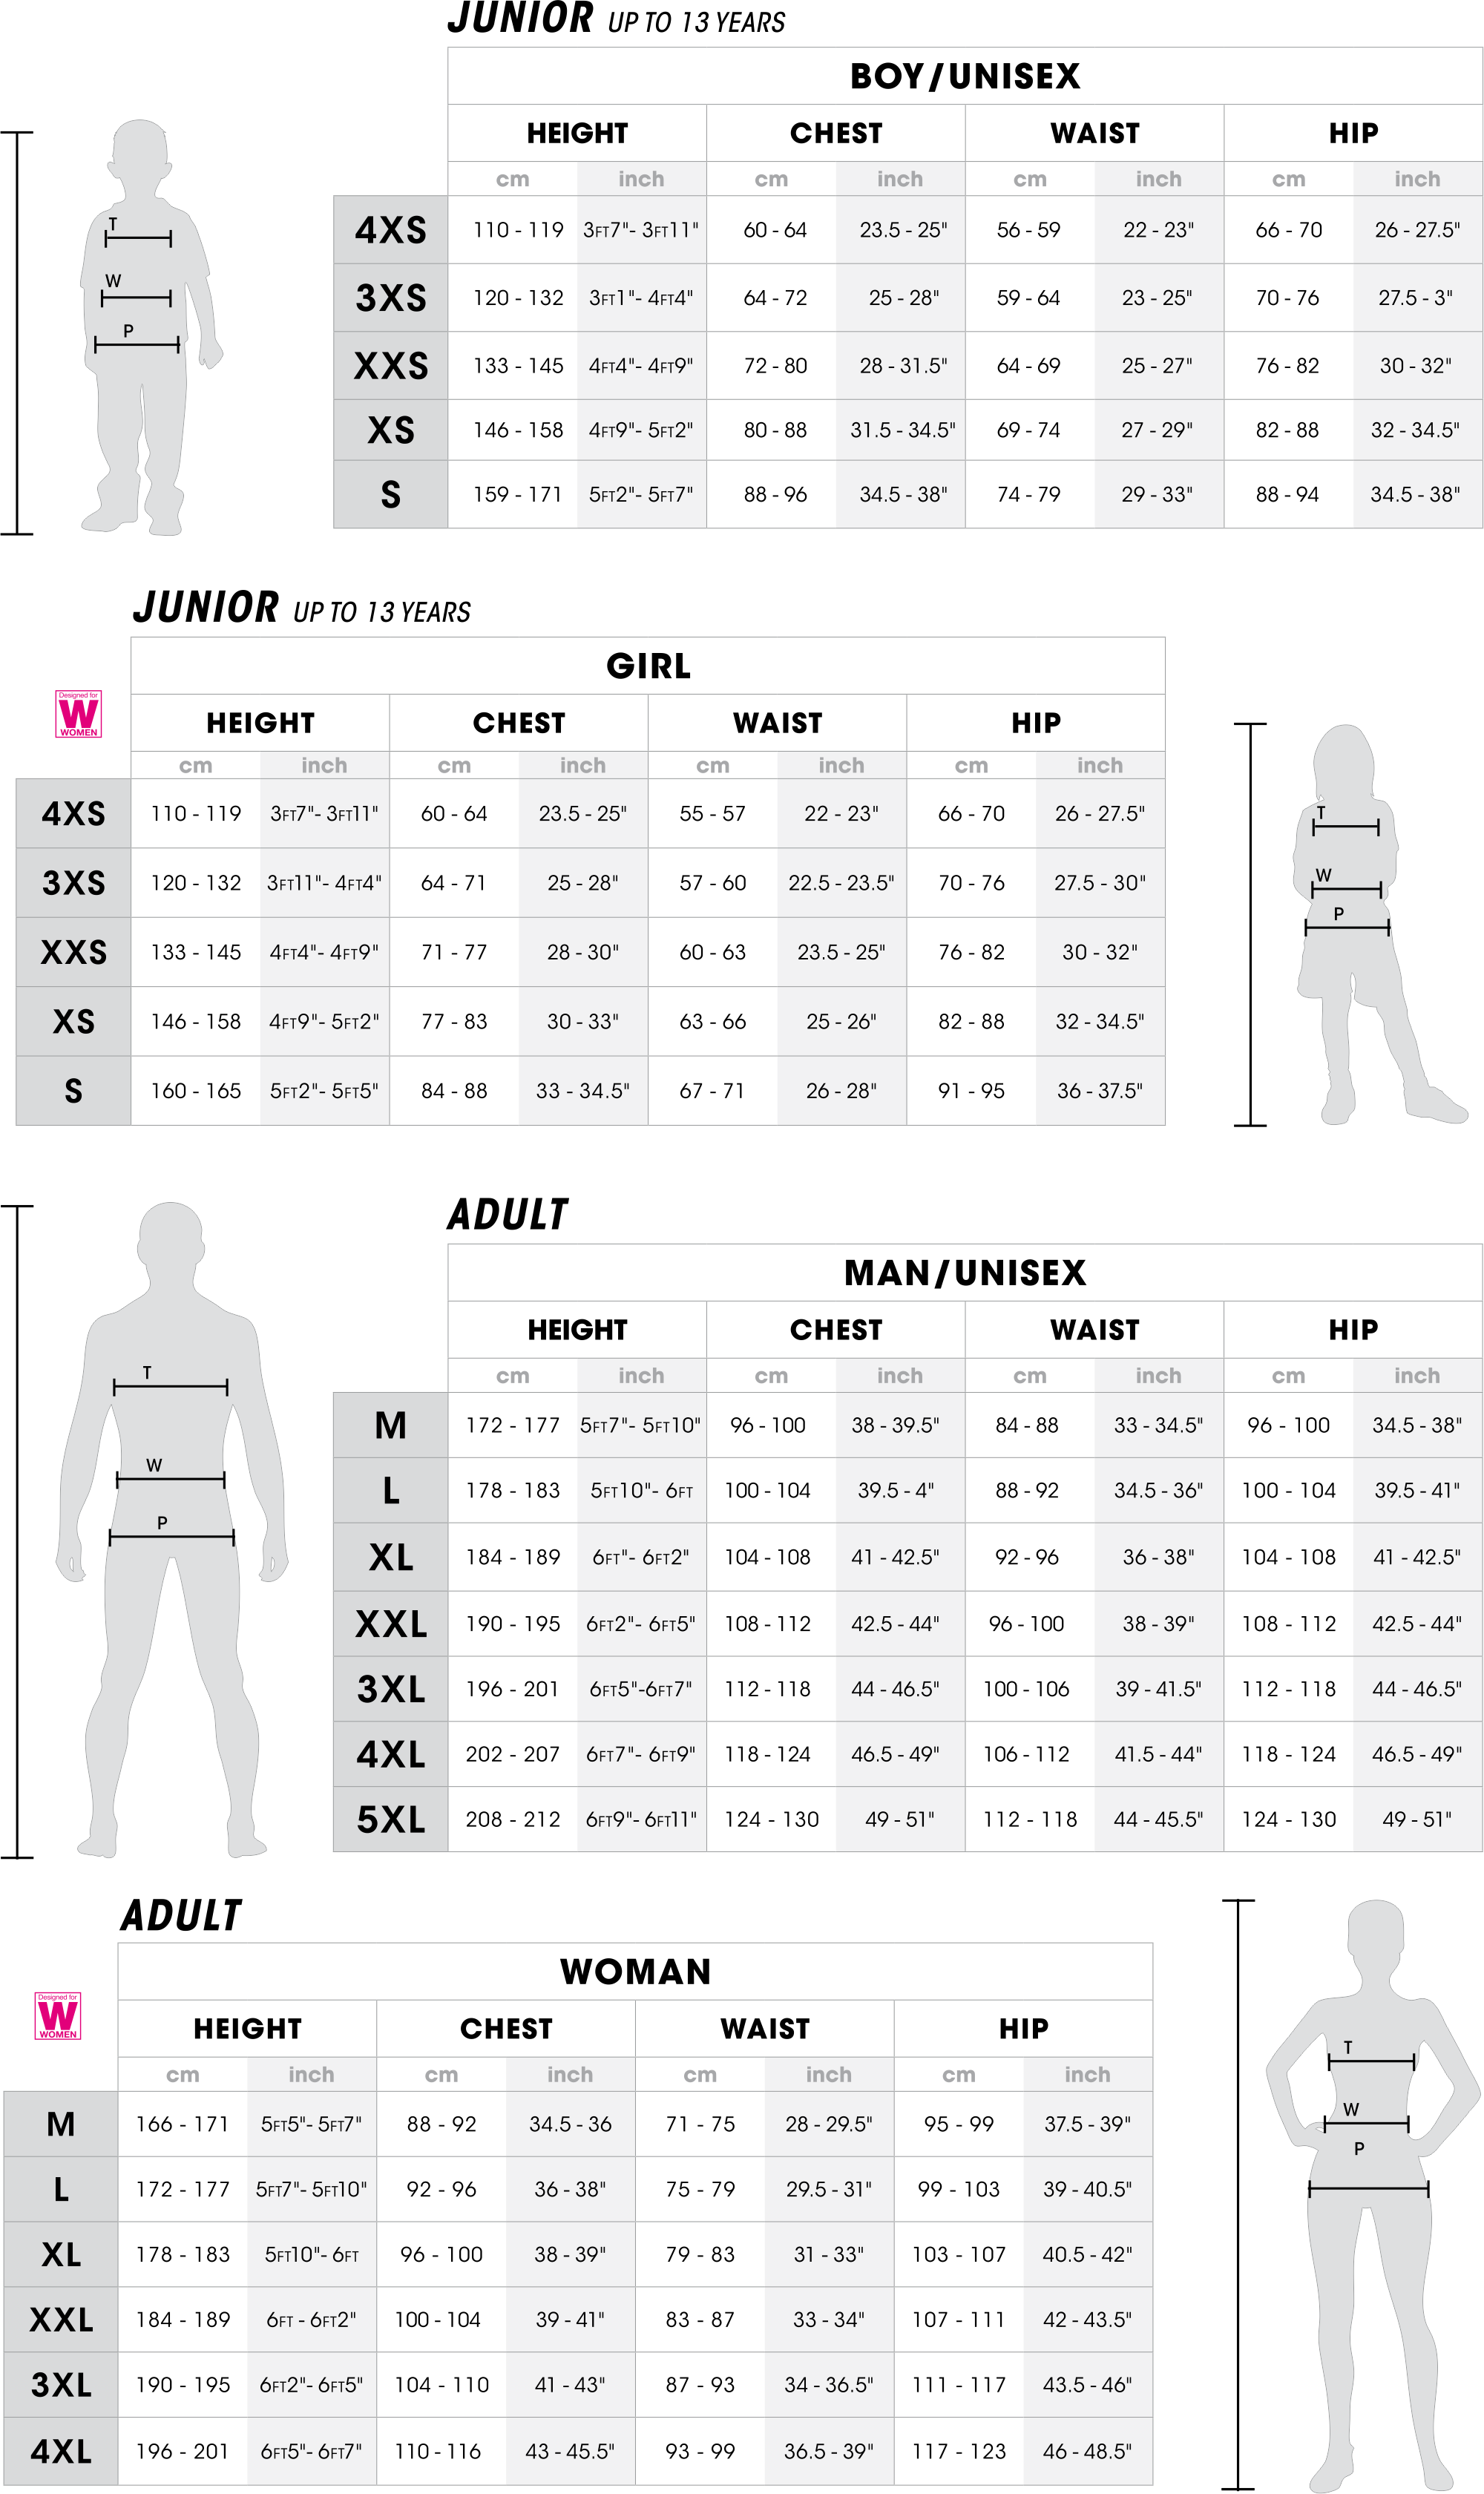 new-sizing-guide-2018.png